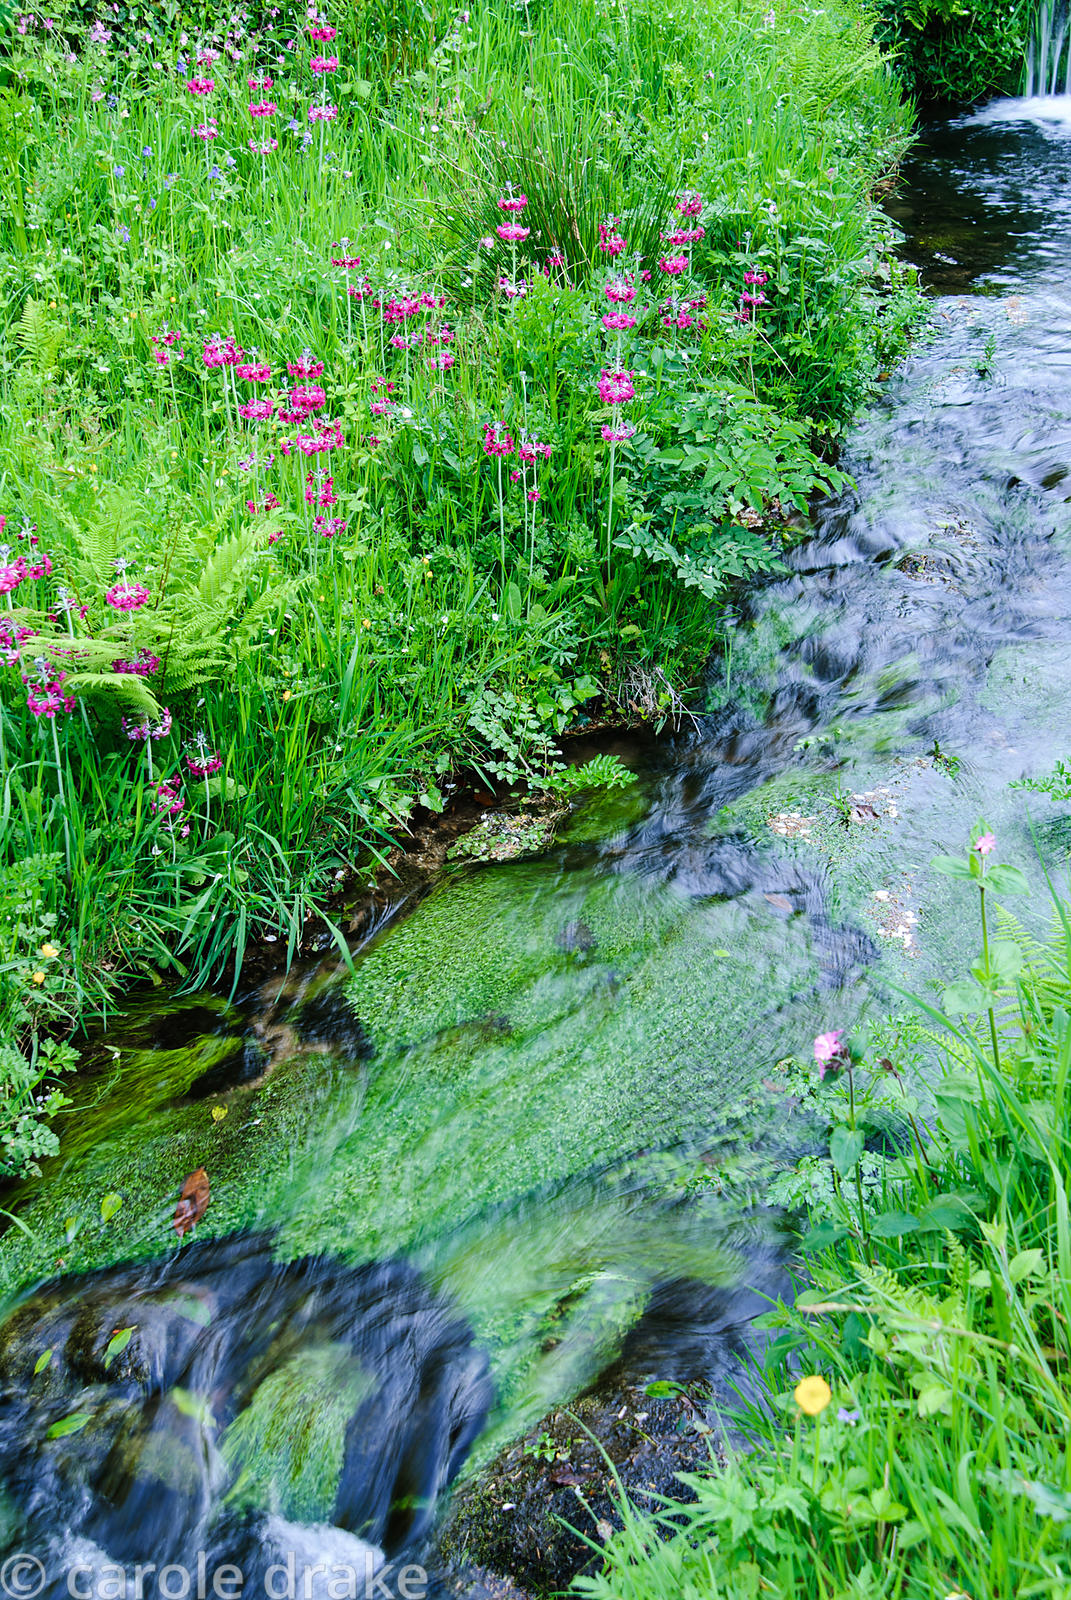 The Addicombe Brook edged with lush moisture loving plants including magenta Primula pulverulenta, ferns, bluebells and red c...